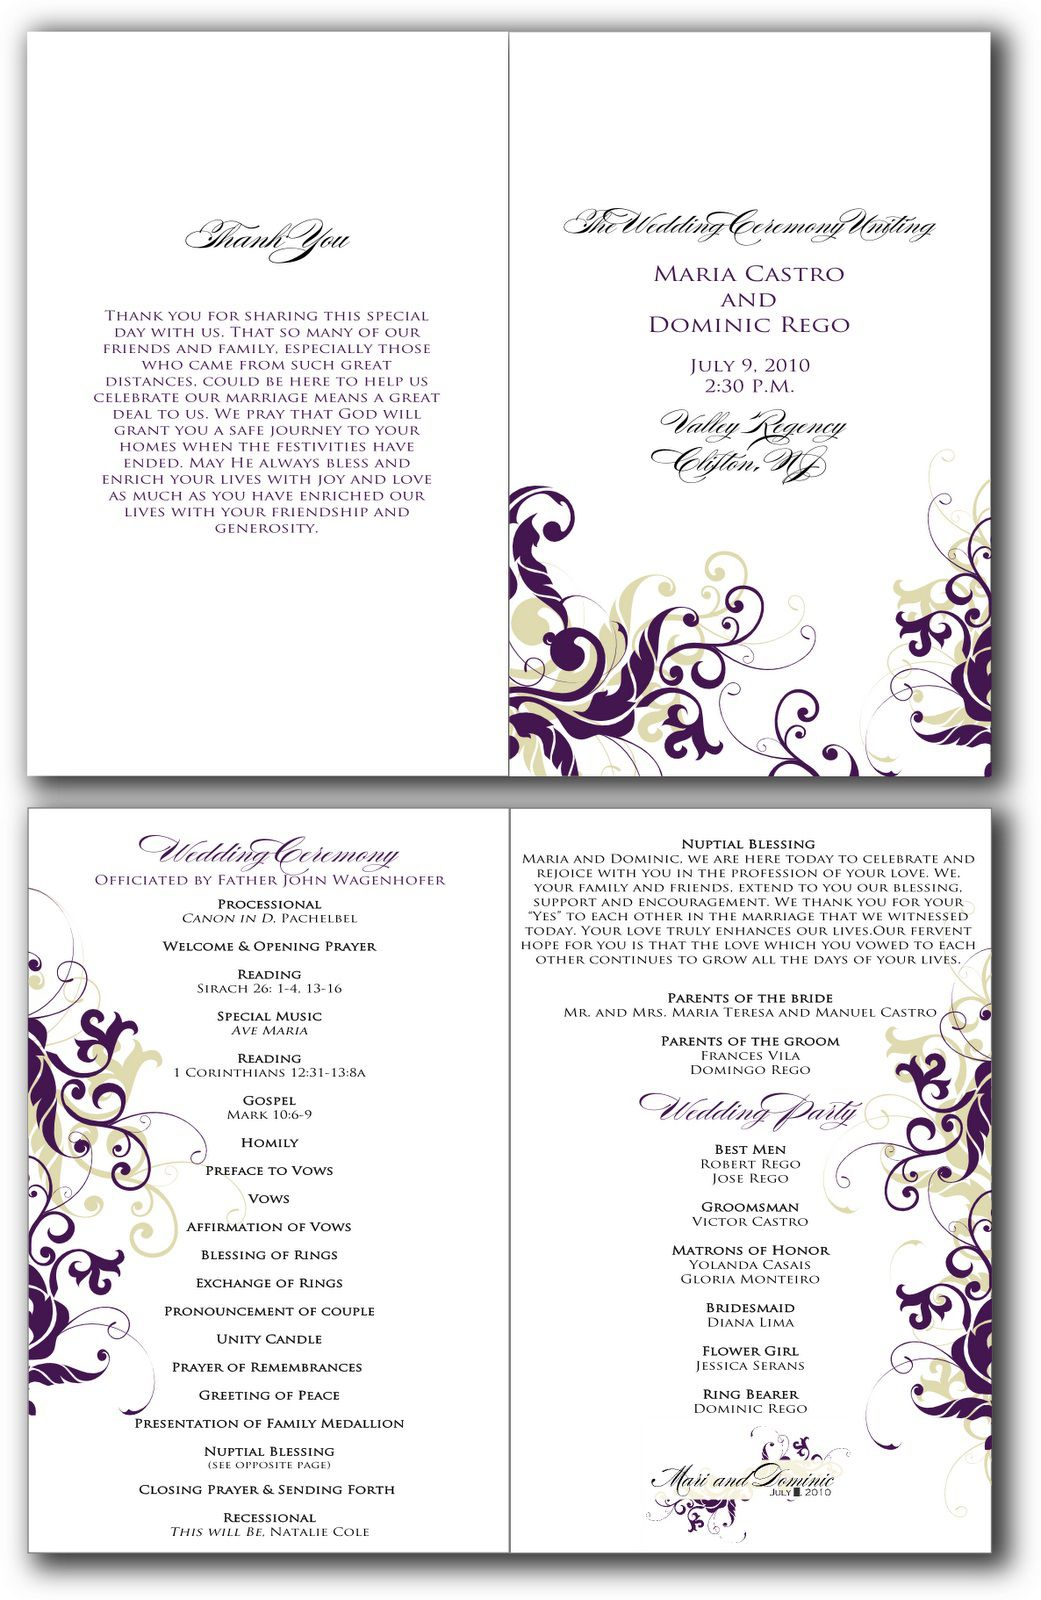 003 Surprising Free Downloadable Wedding Program Template Sample  Templates That Can Be Printed Printable Fall ReceptionFull